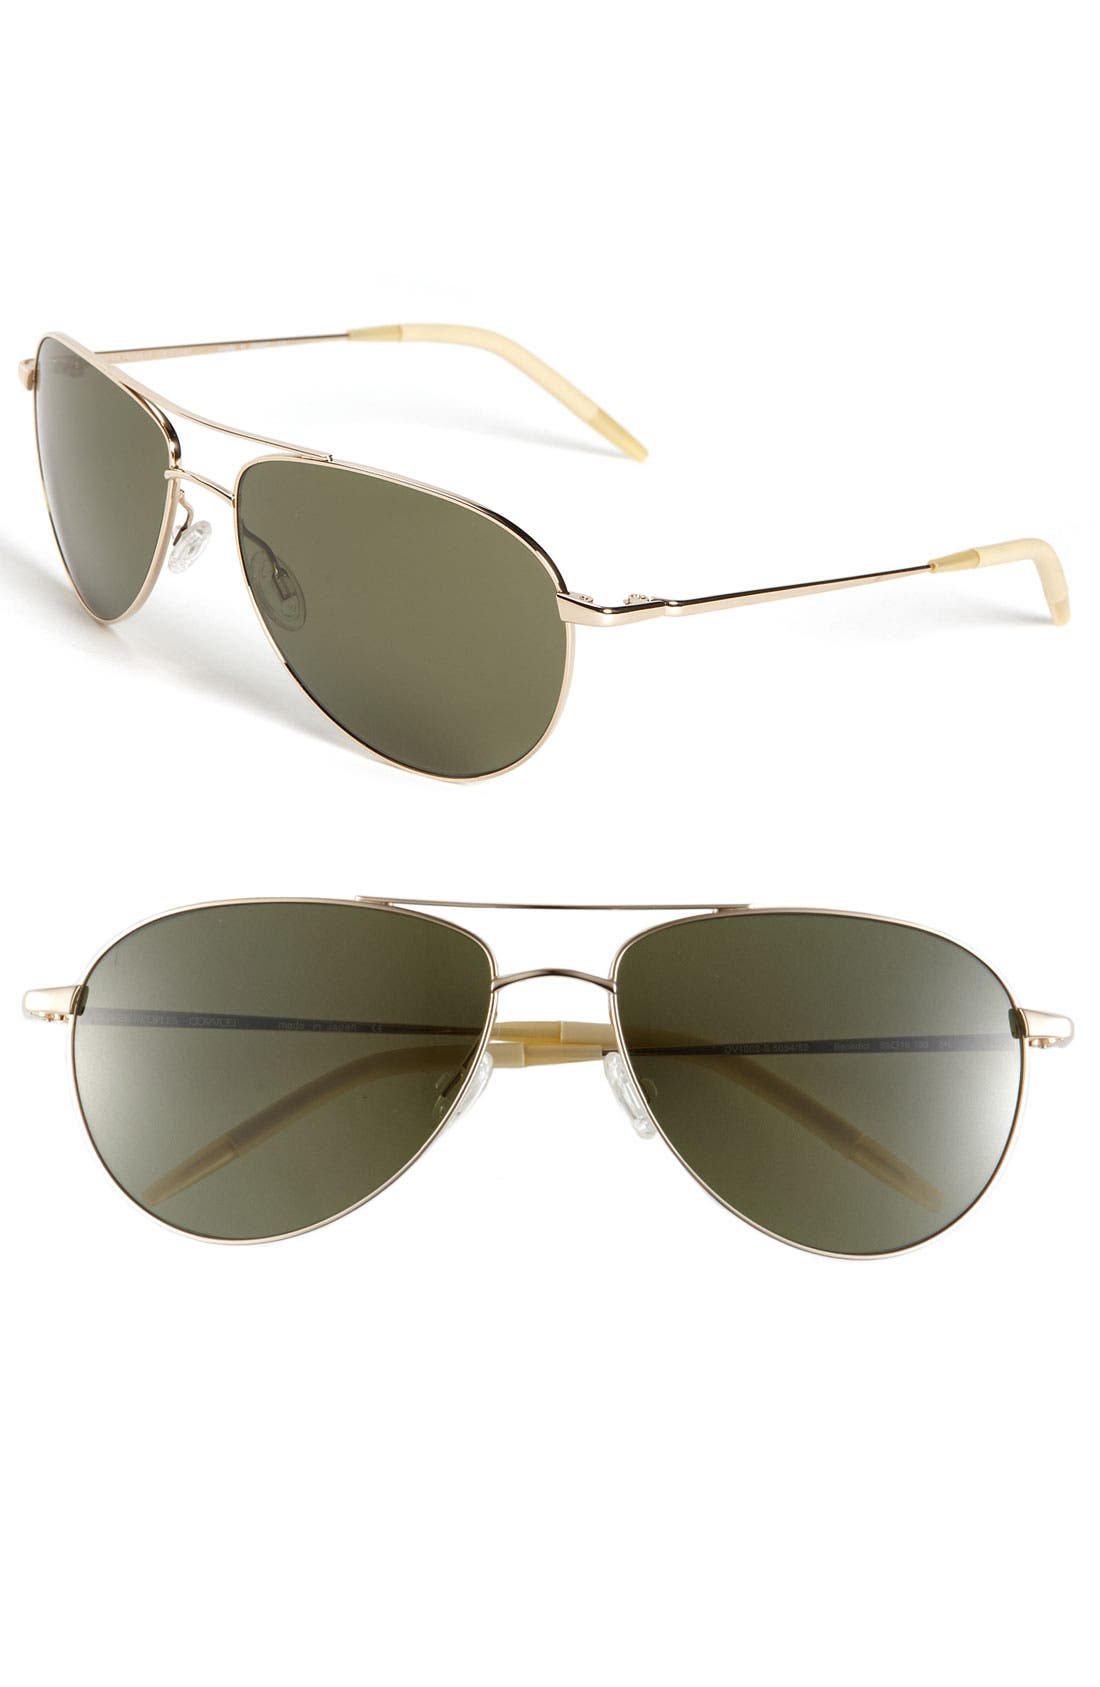 'Benedict' 59mm Aviator Sunglasses,                         Main,                         color, Gold/ Mineral Glass